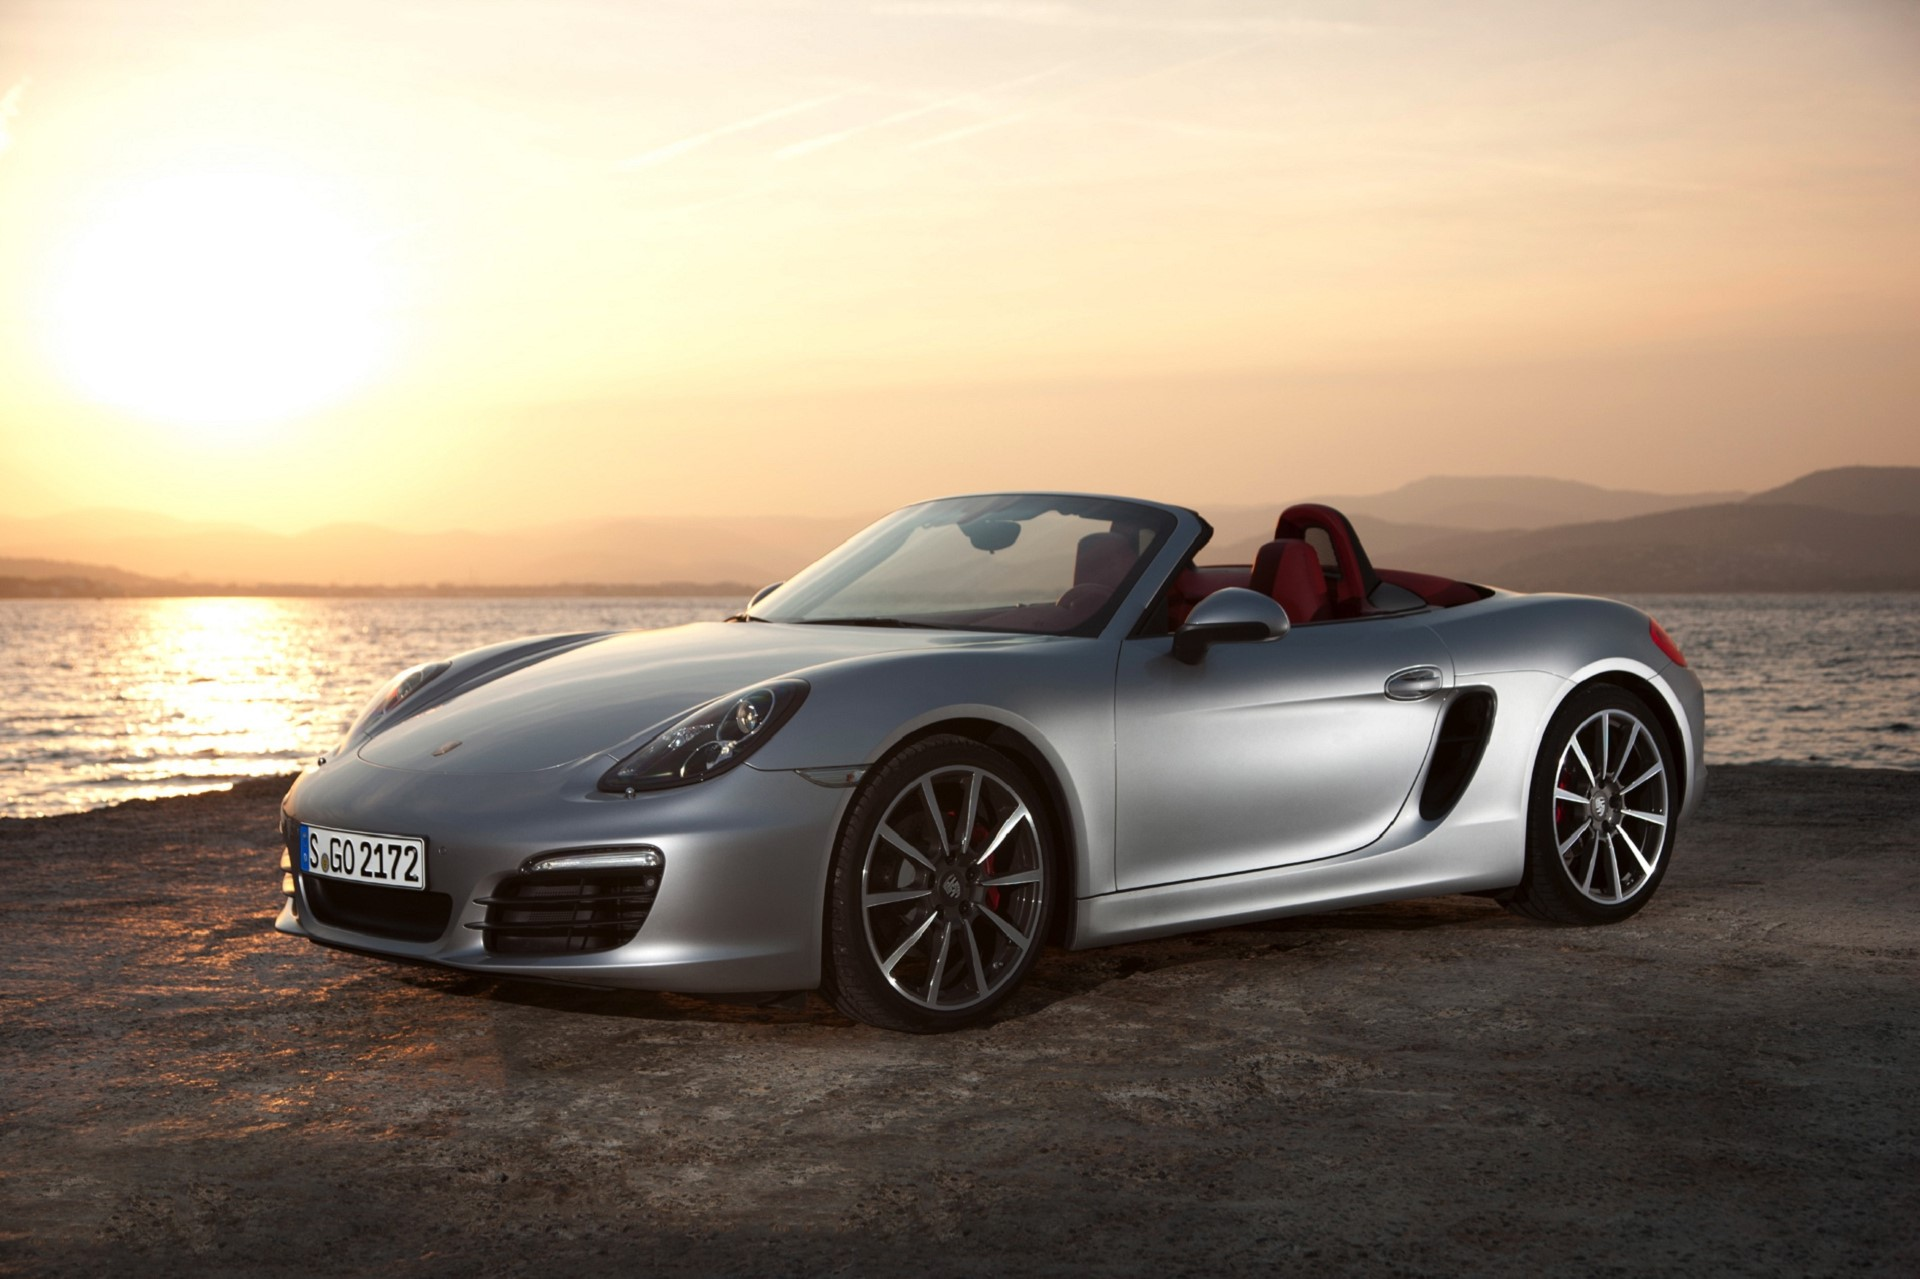 Pictures of Porsche Boxster Spyder